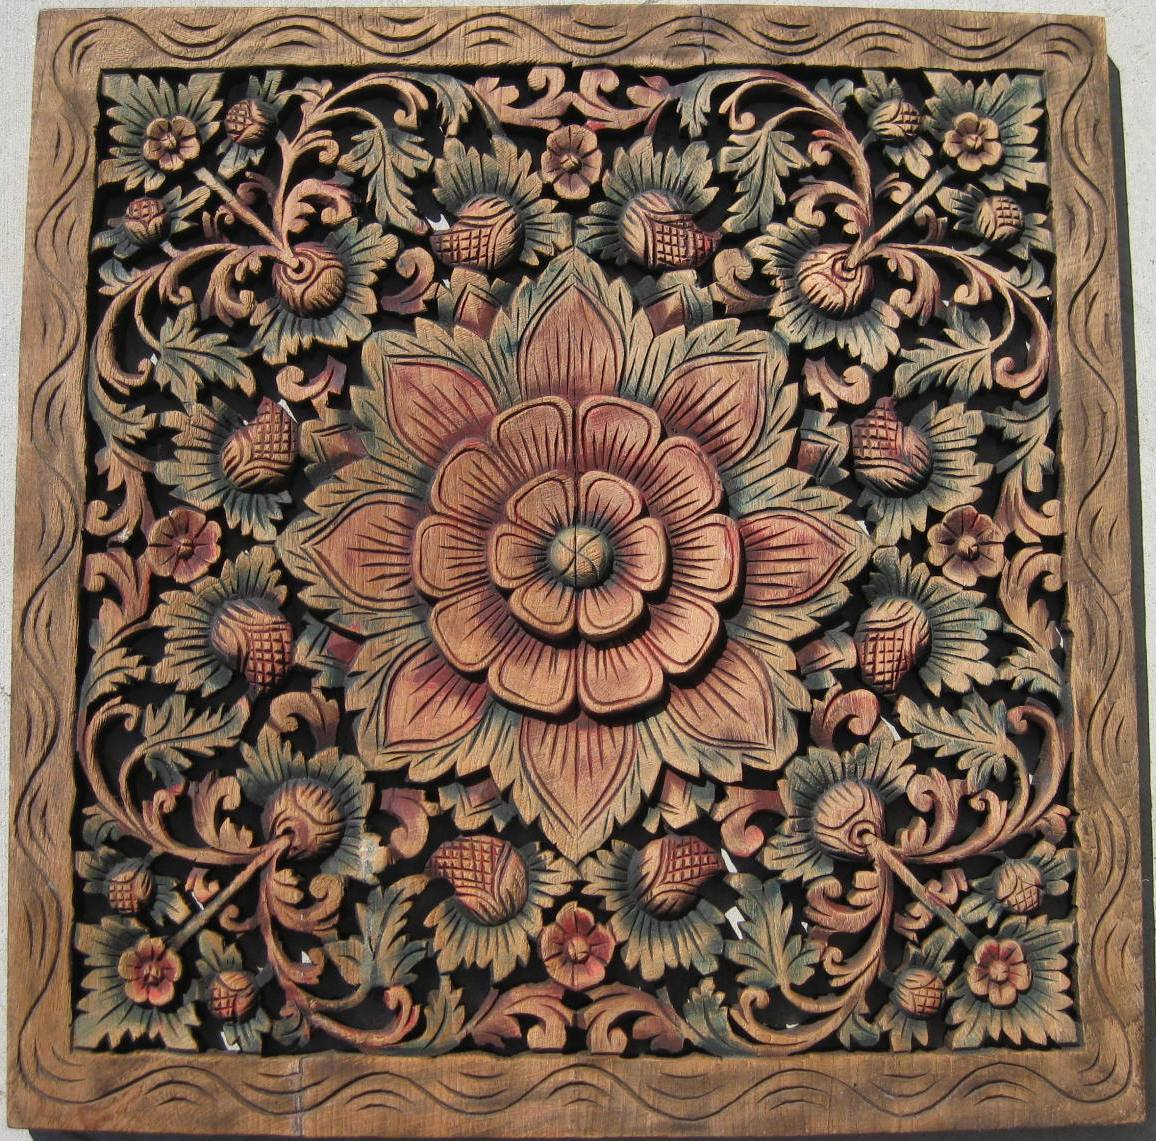 Custom hand carved teak wood panels